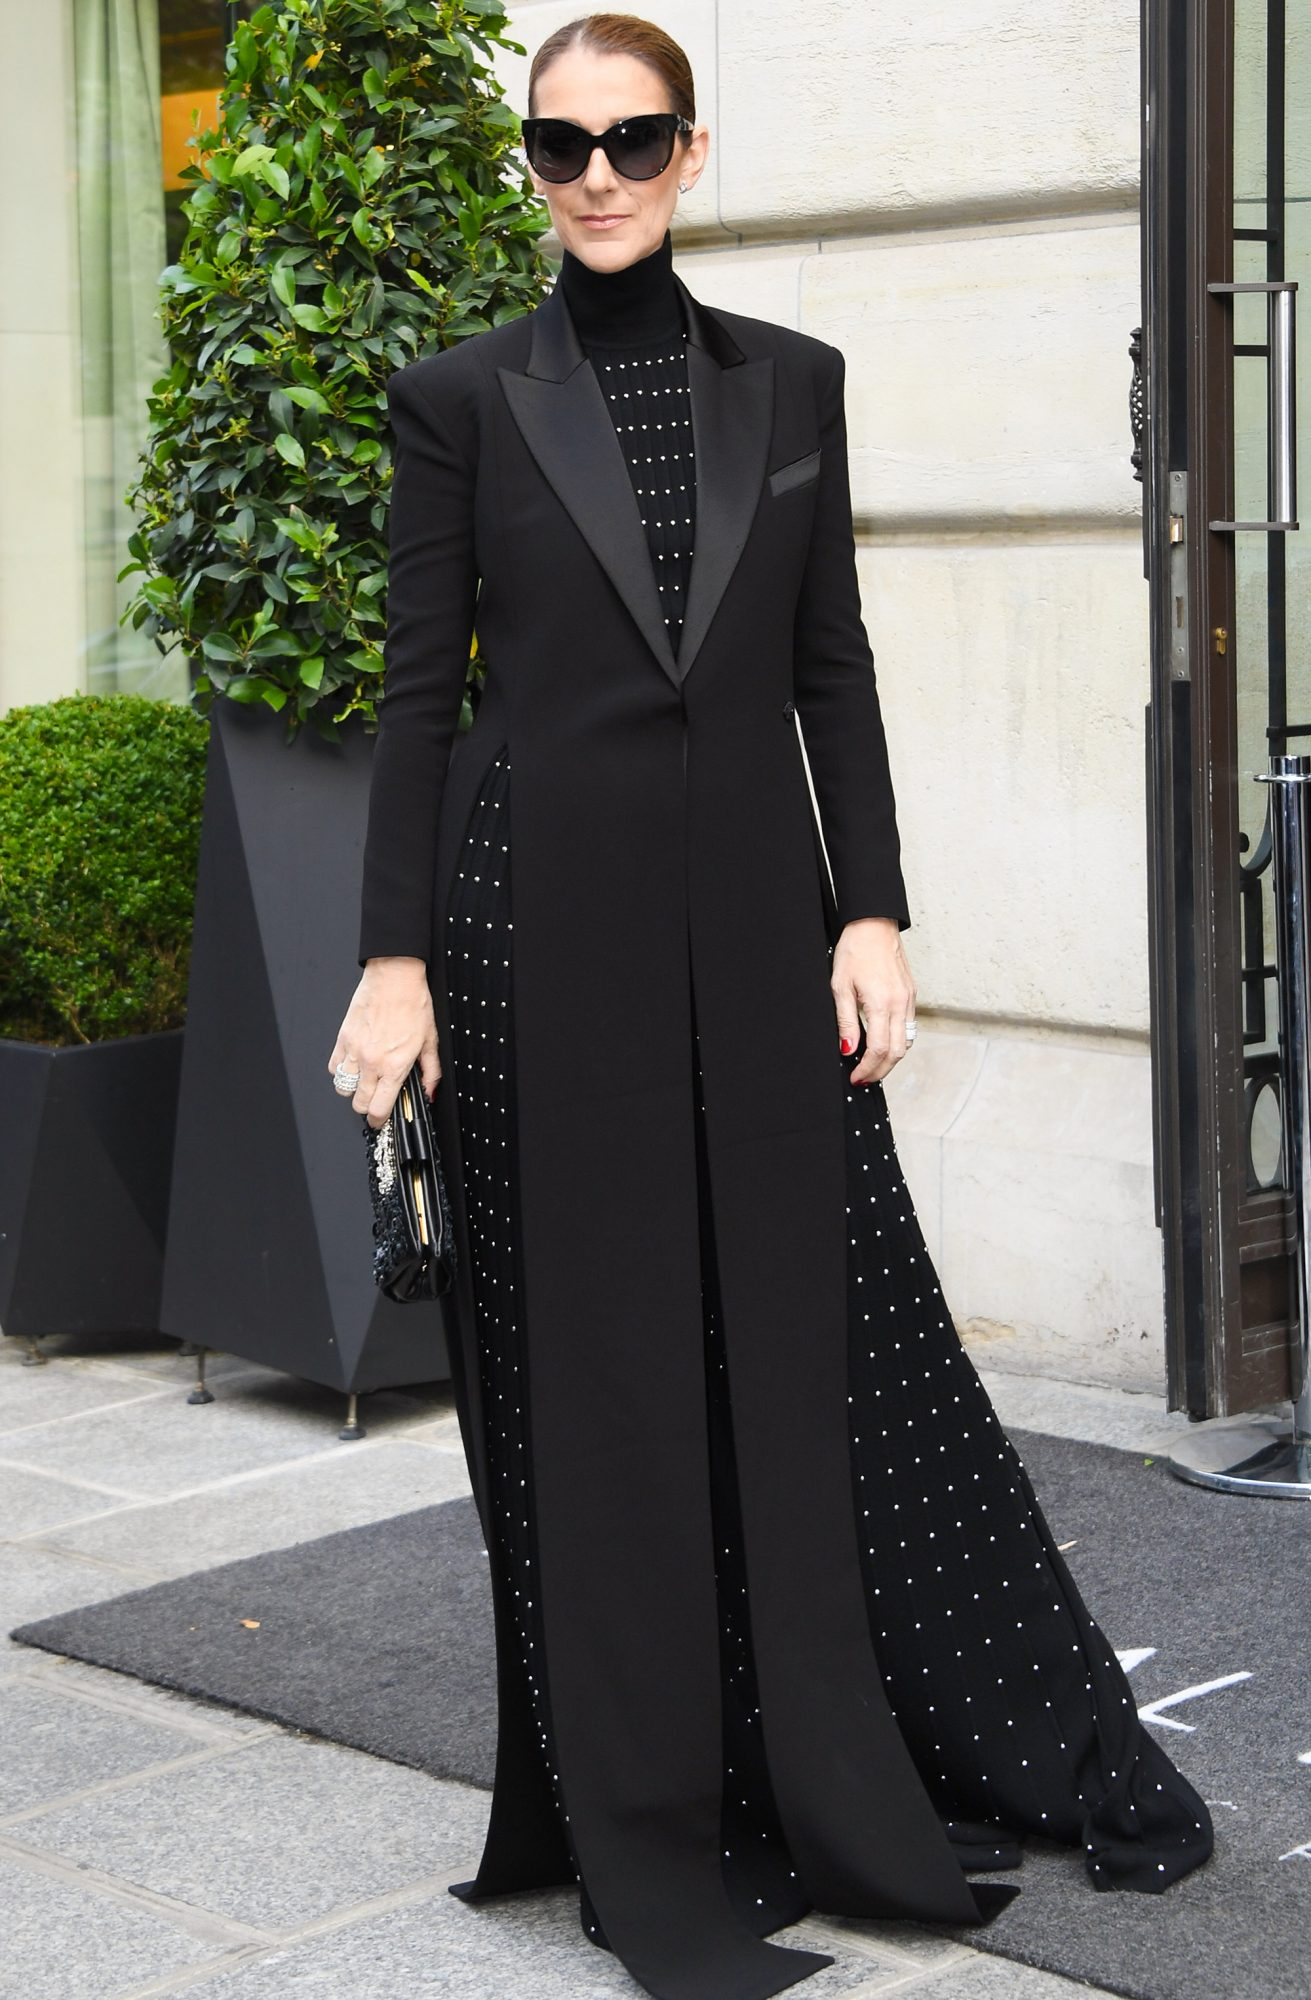 Celine Dion leaves the Royal Monceau hotel in Paris